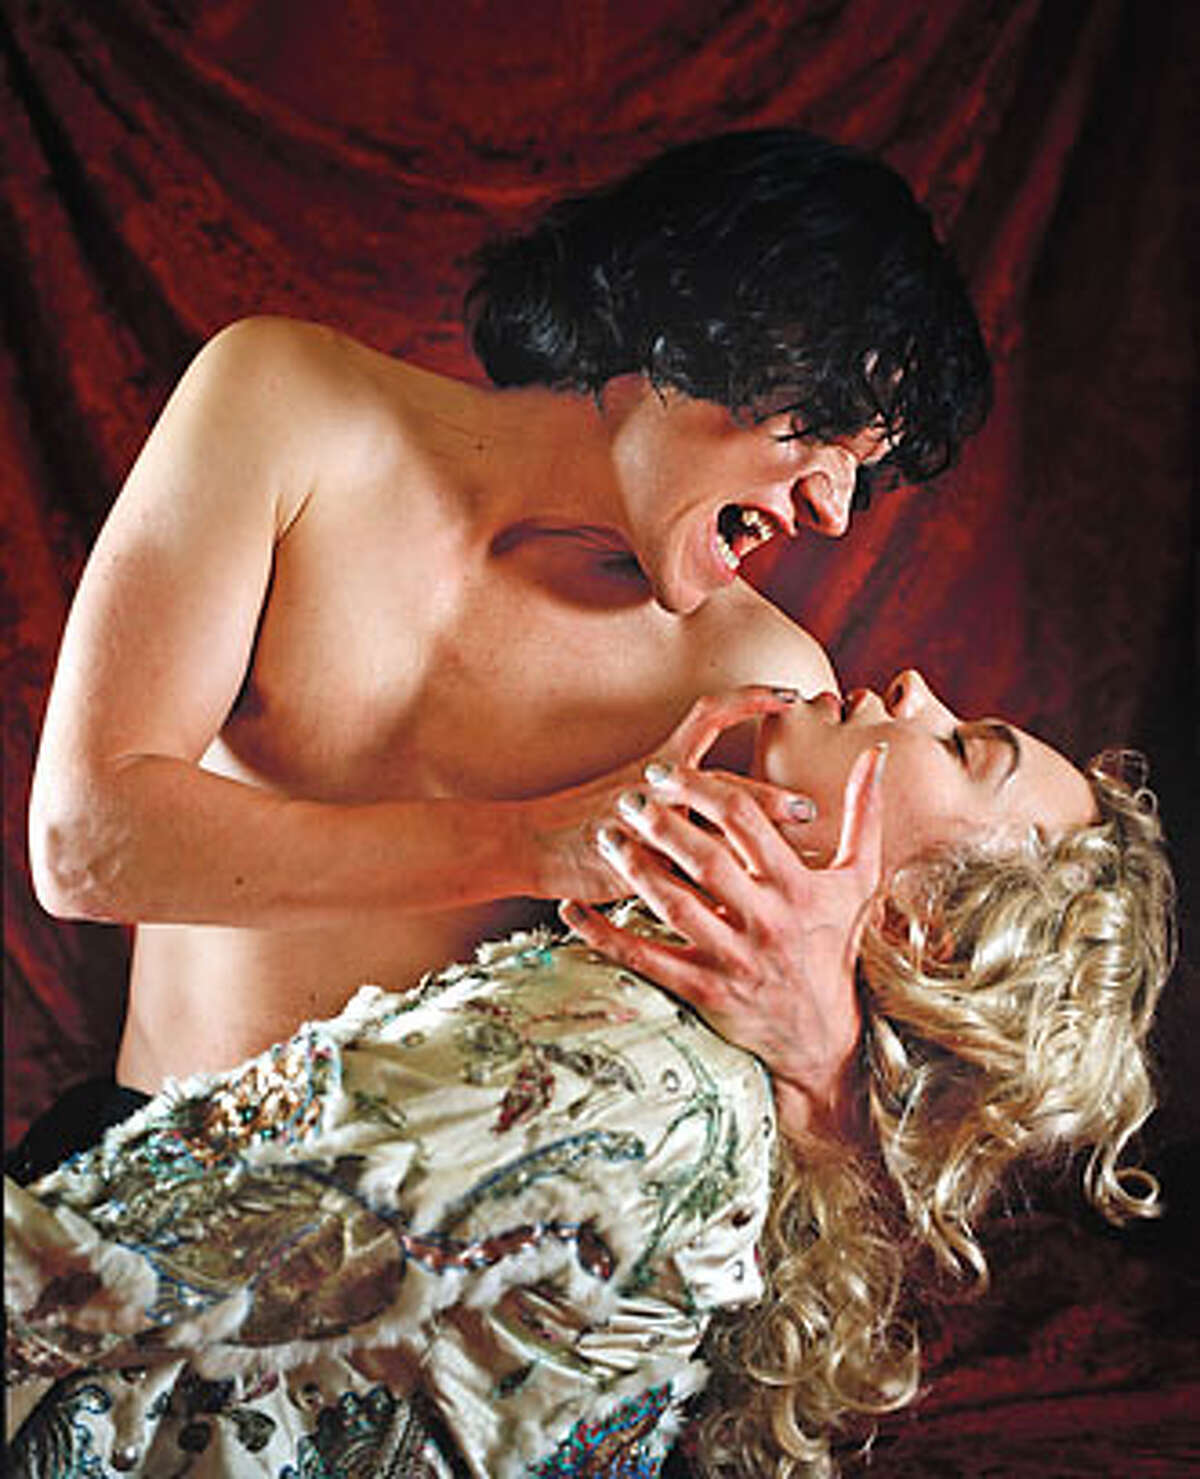 Transylvania's most famous undead resident bares his fangs in a chilling new adaptation of Bram Stoker's horror classic. Marc Warren (Band of Brothers) stars as Dracula, with Sophia Myles (Miss Marple) as Lucy Ran on: 02-07-2007 Dracula (Marc Warren) and Lucy (Sophia Myles) in Masterpiece Theatres Dracula.